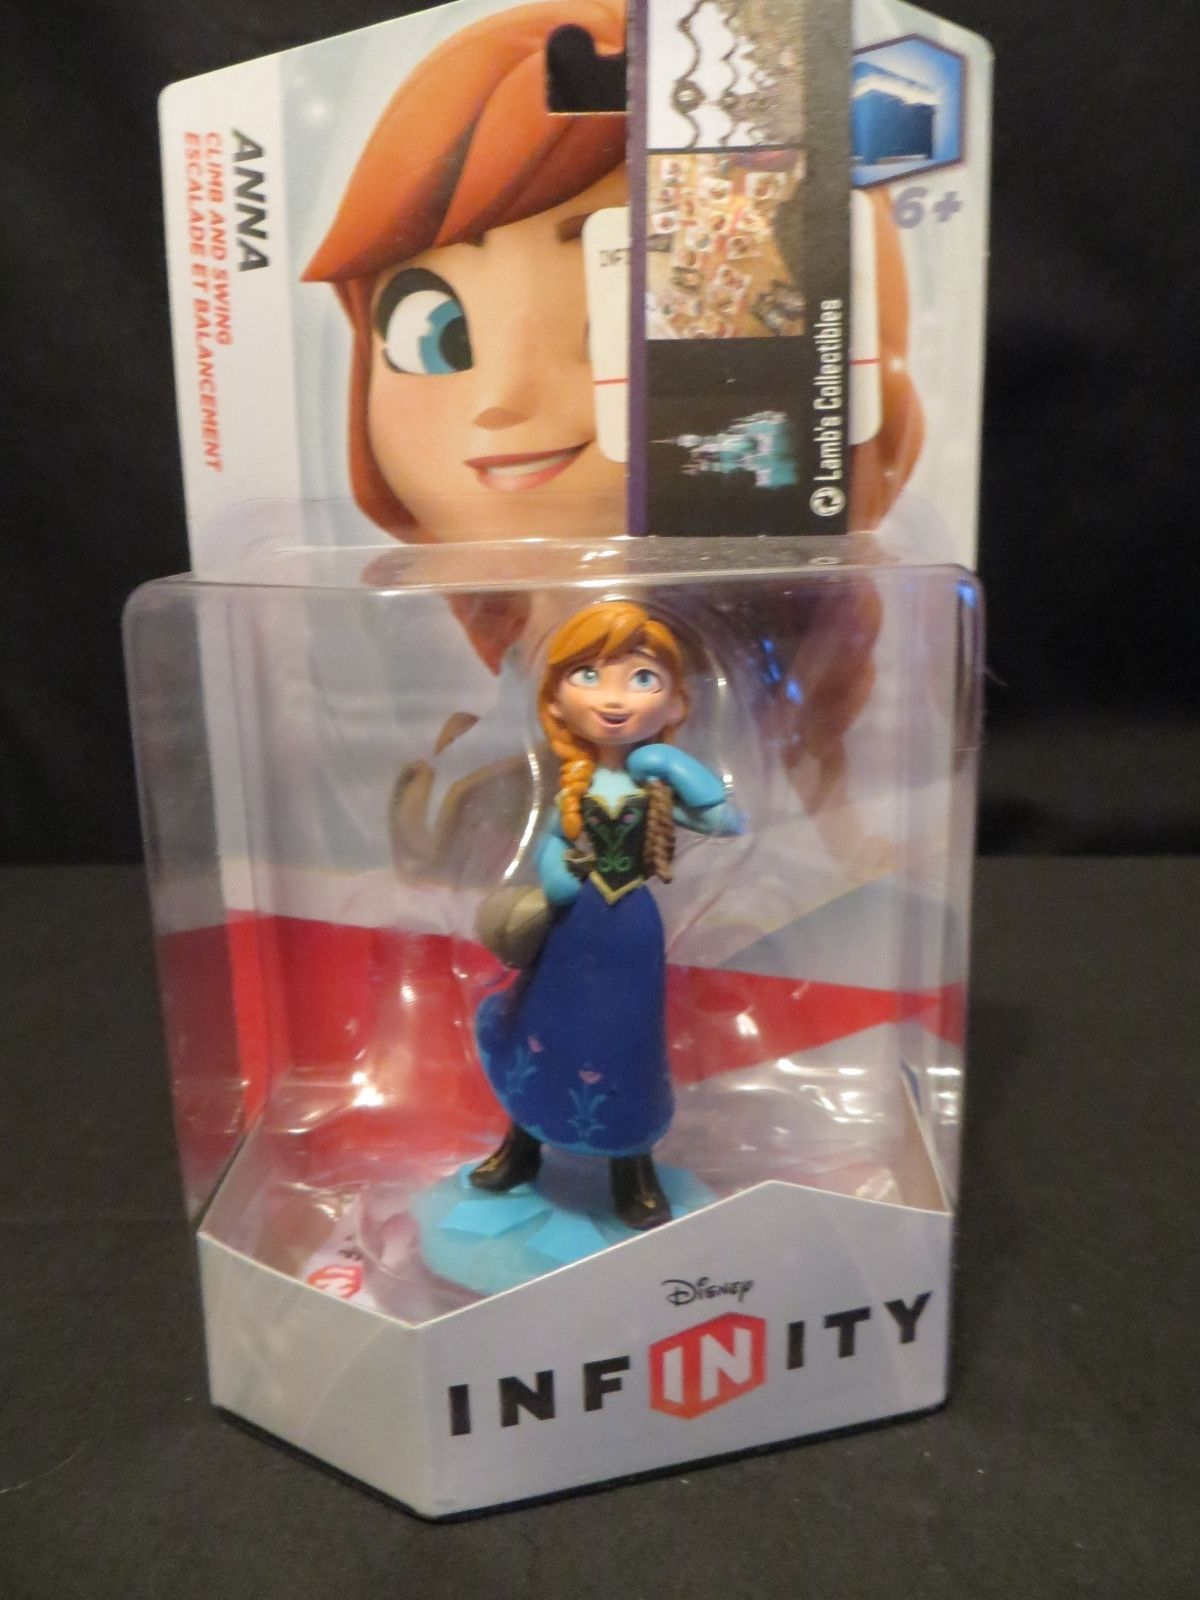 Disney Infinity 1.0 Original Anna Frozen Princess Figure